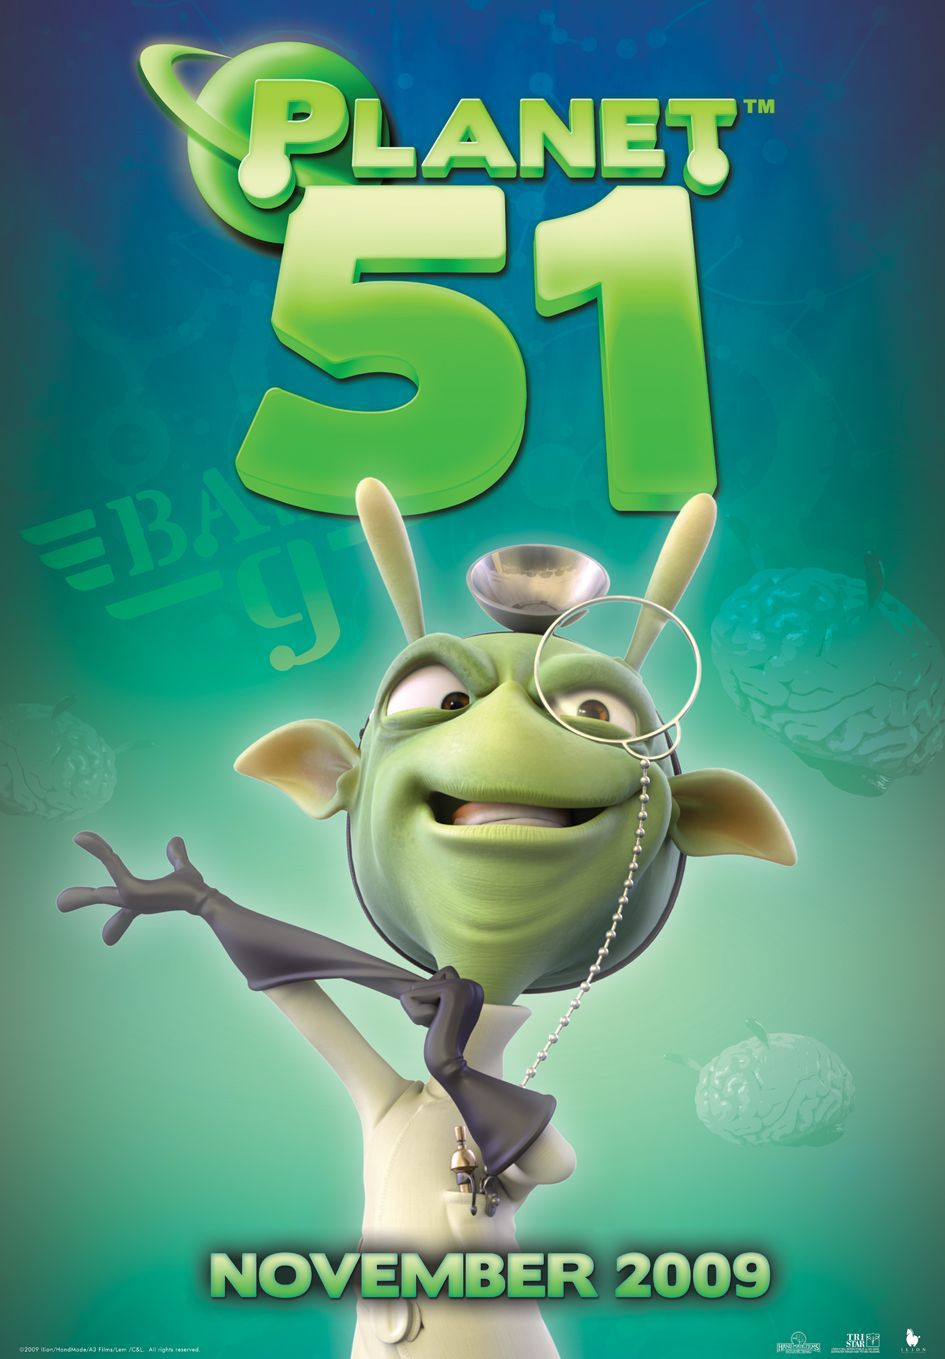 Planet 51 - alien scientist